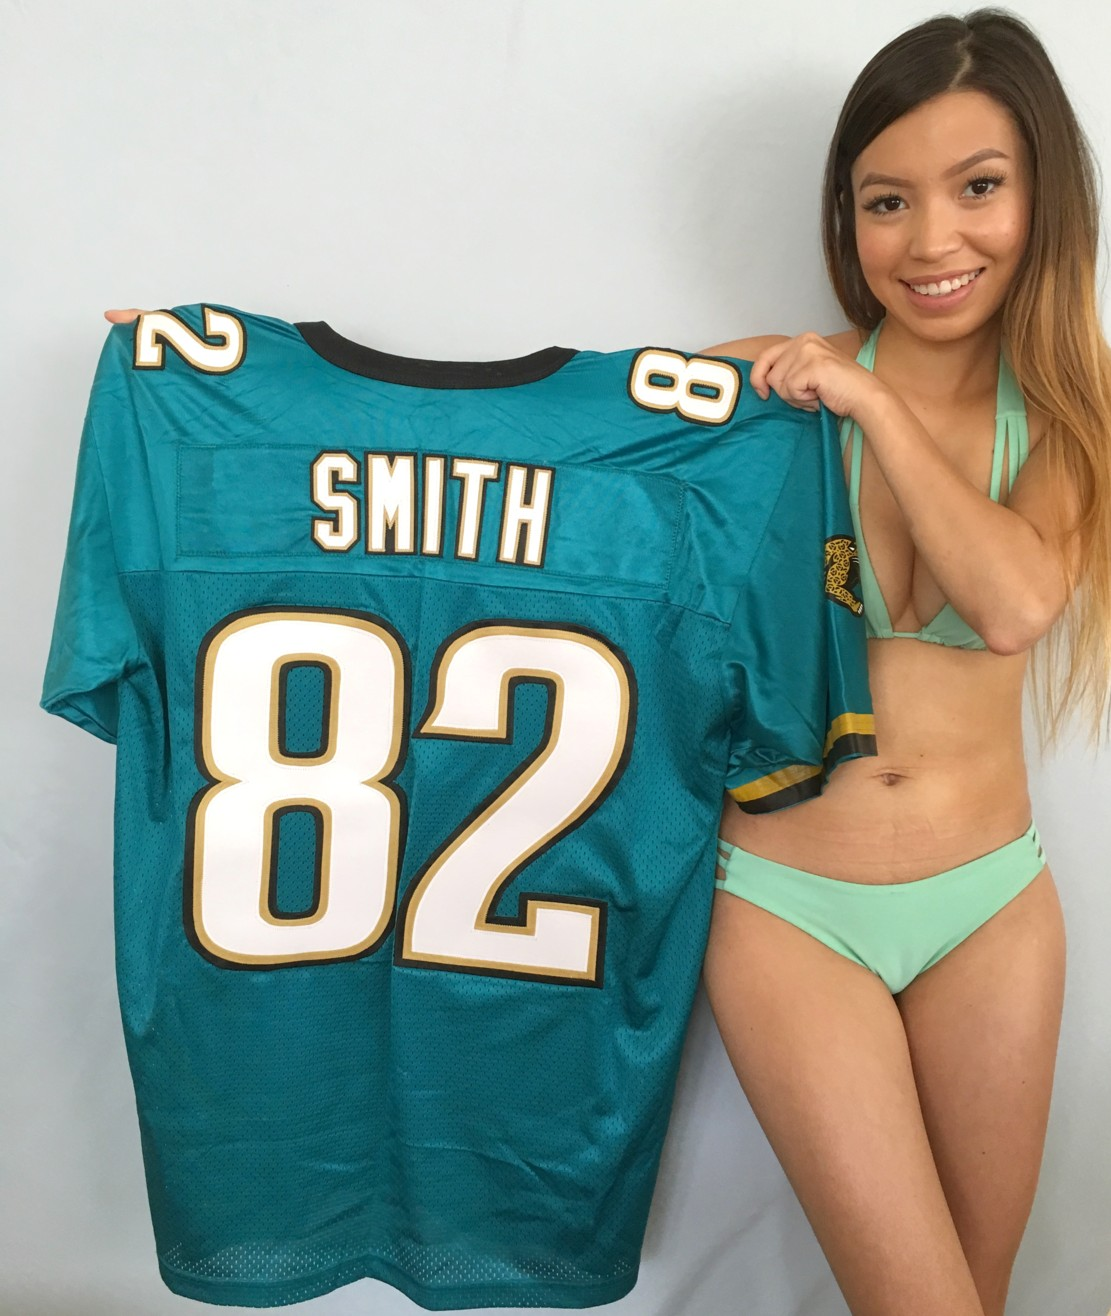 Jimmy Smith Jacksonville Jaguars authentic Nike triple stitched teal jersey NEW